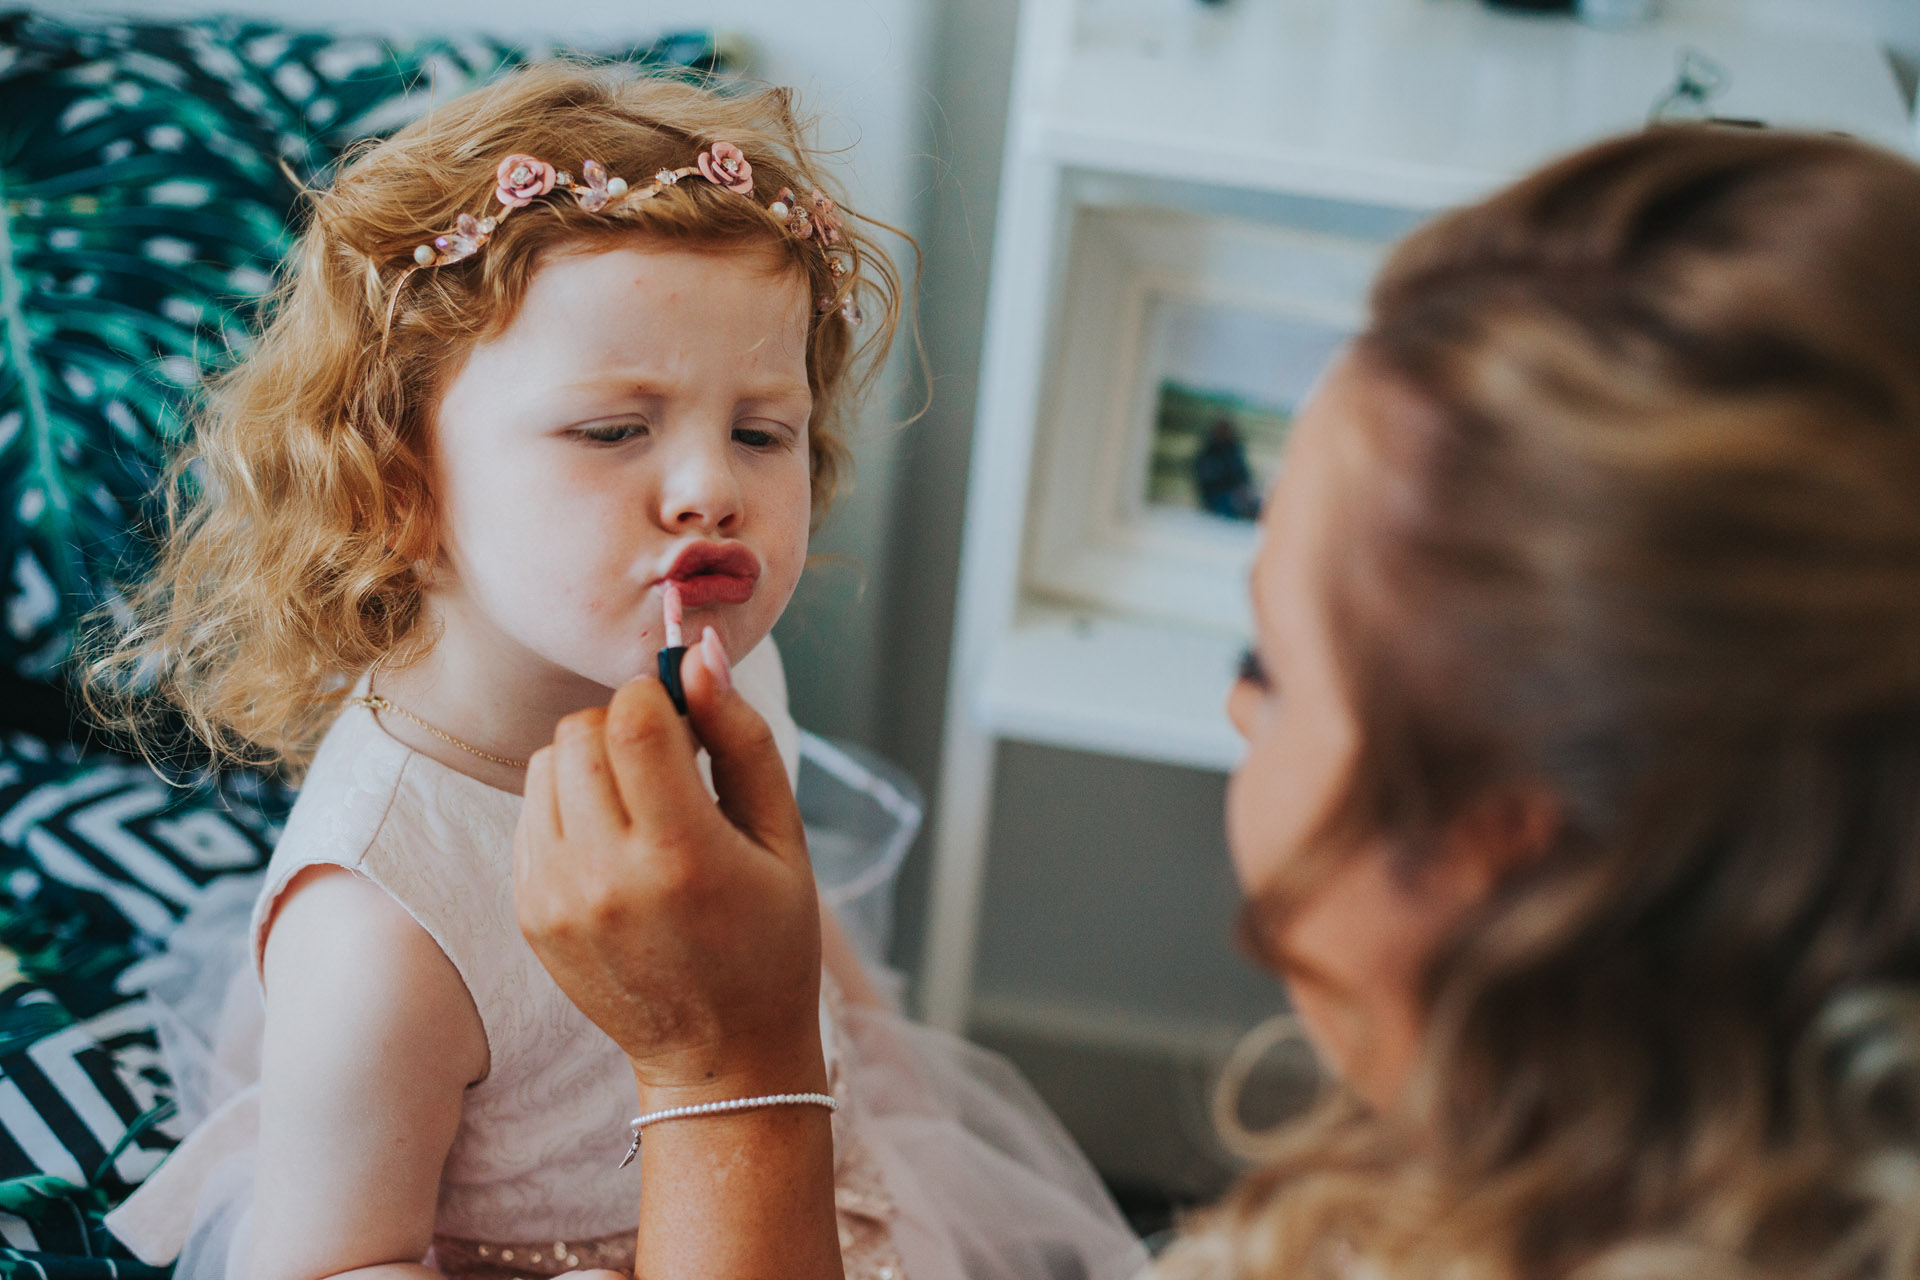 Flower girl pulls a funny pouty face as the bridesmaid puts lipstick on her.